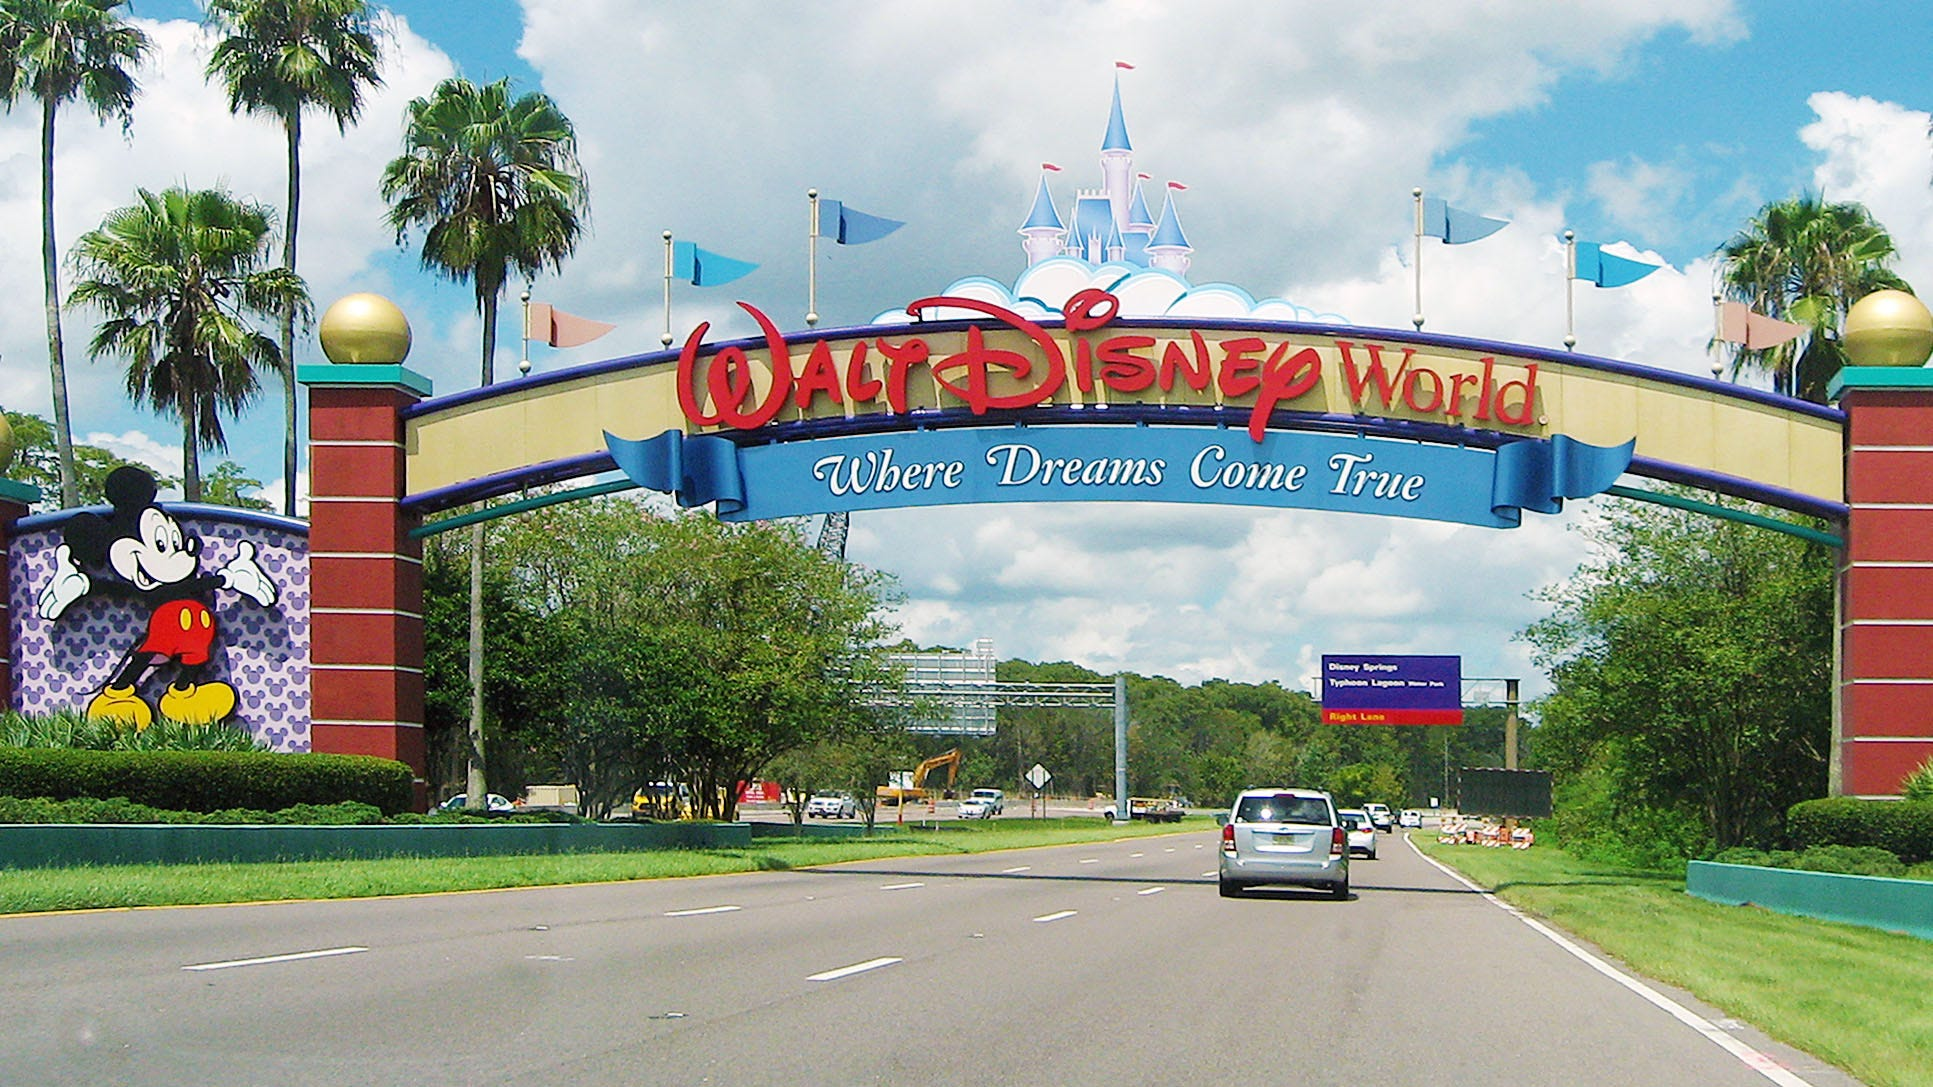 Disney expands layoffs, bringing total to 32,000 workers as theme parks take biggest hit from pandemic